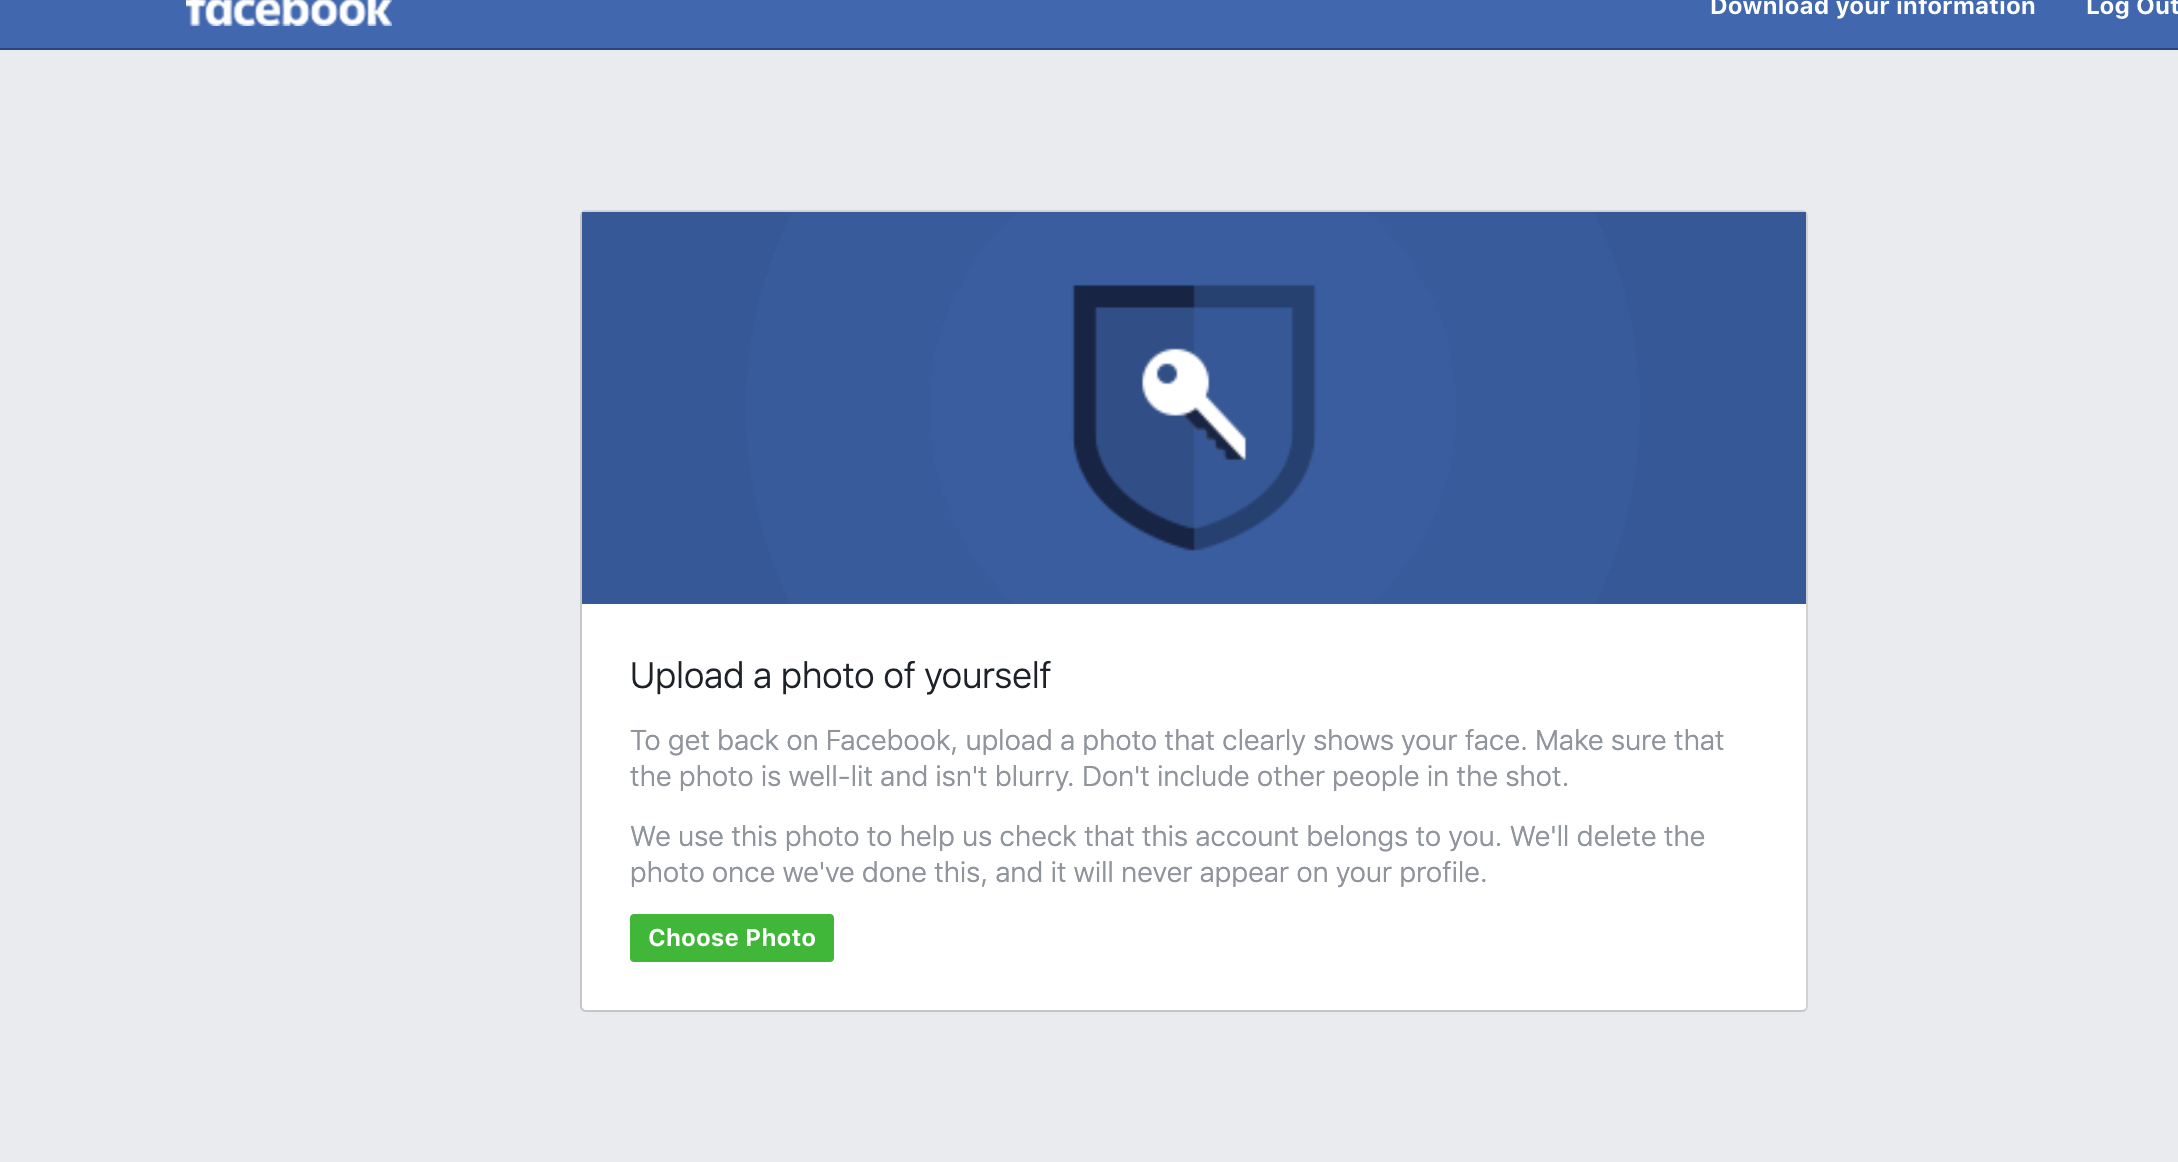 Facebooks wants your phone number, photo and you can't say